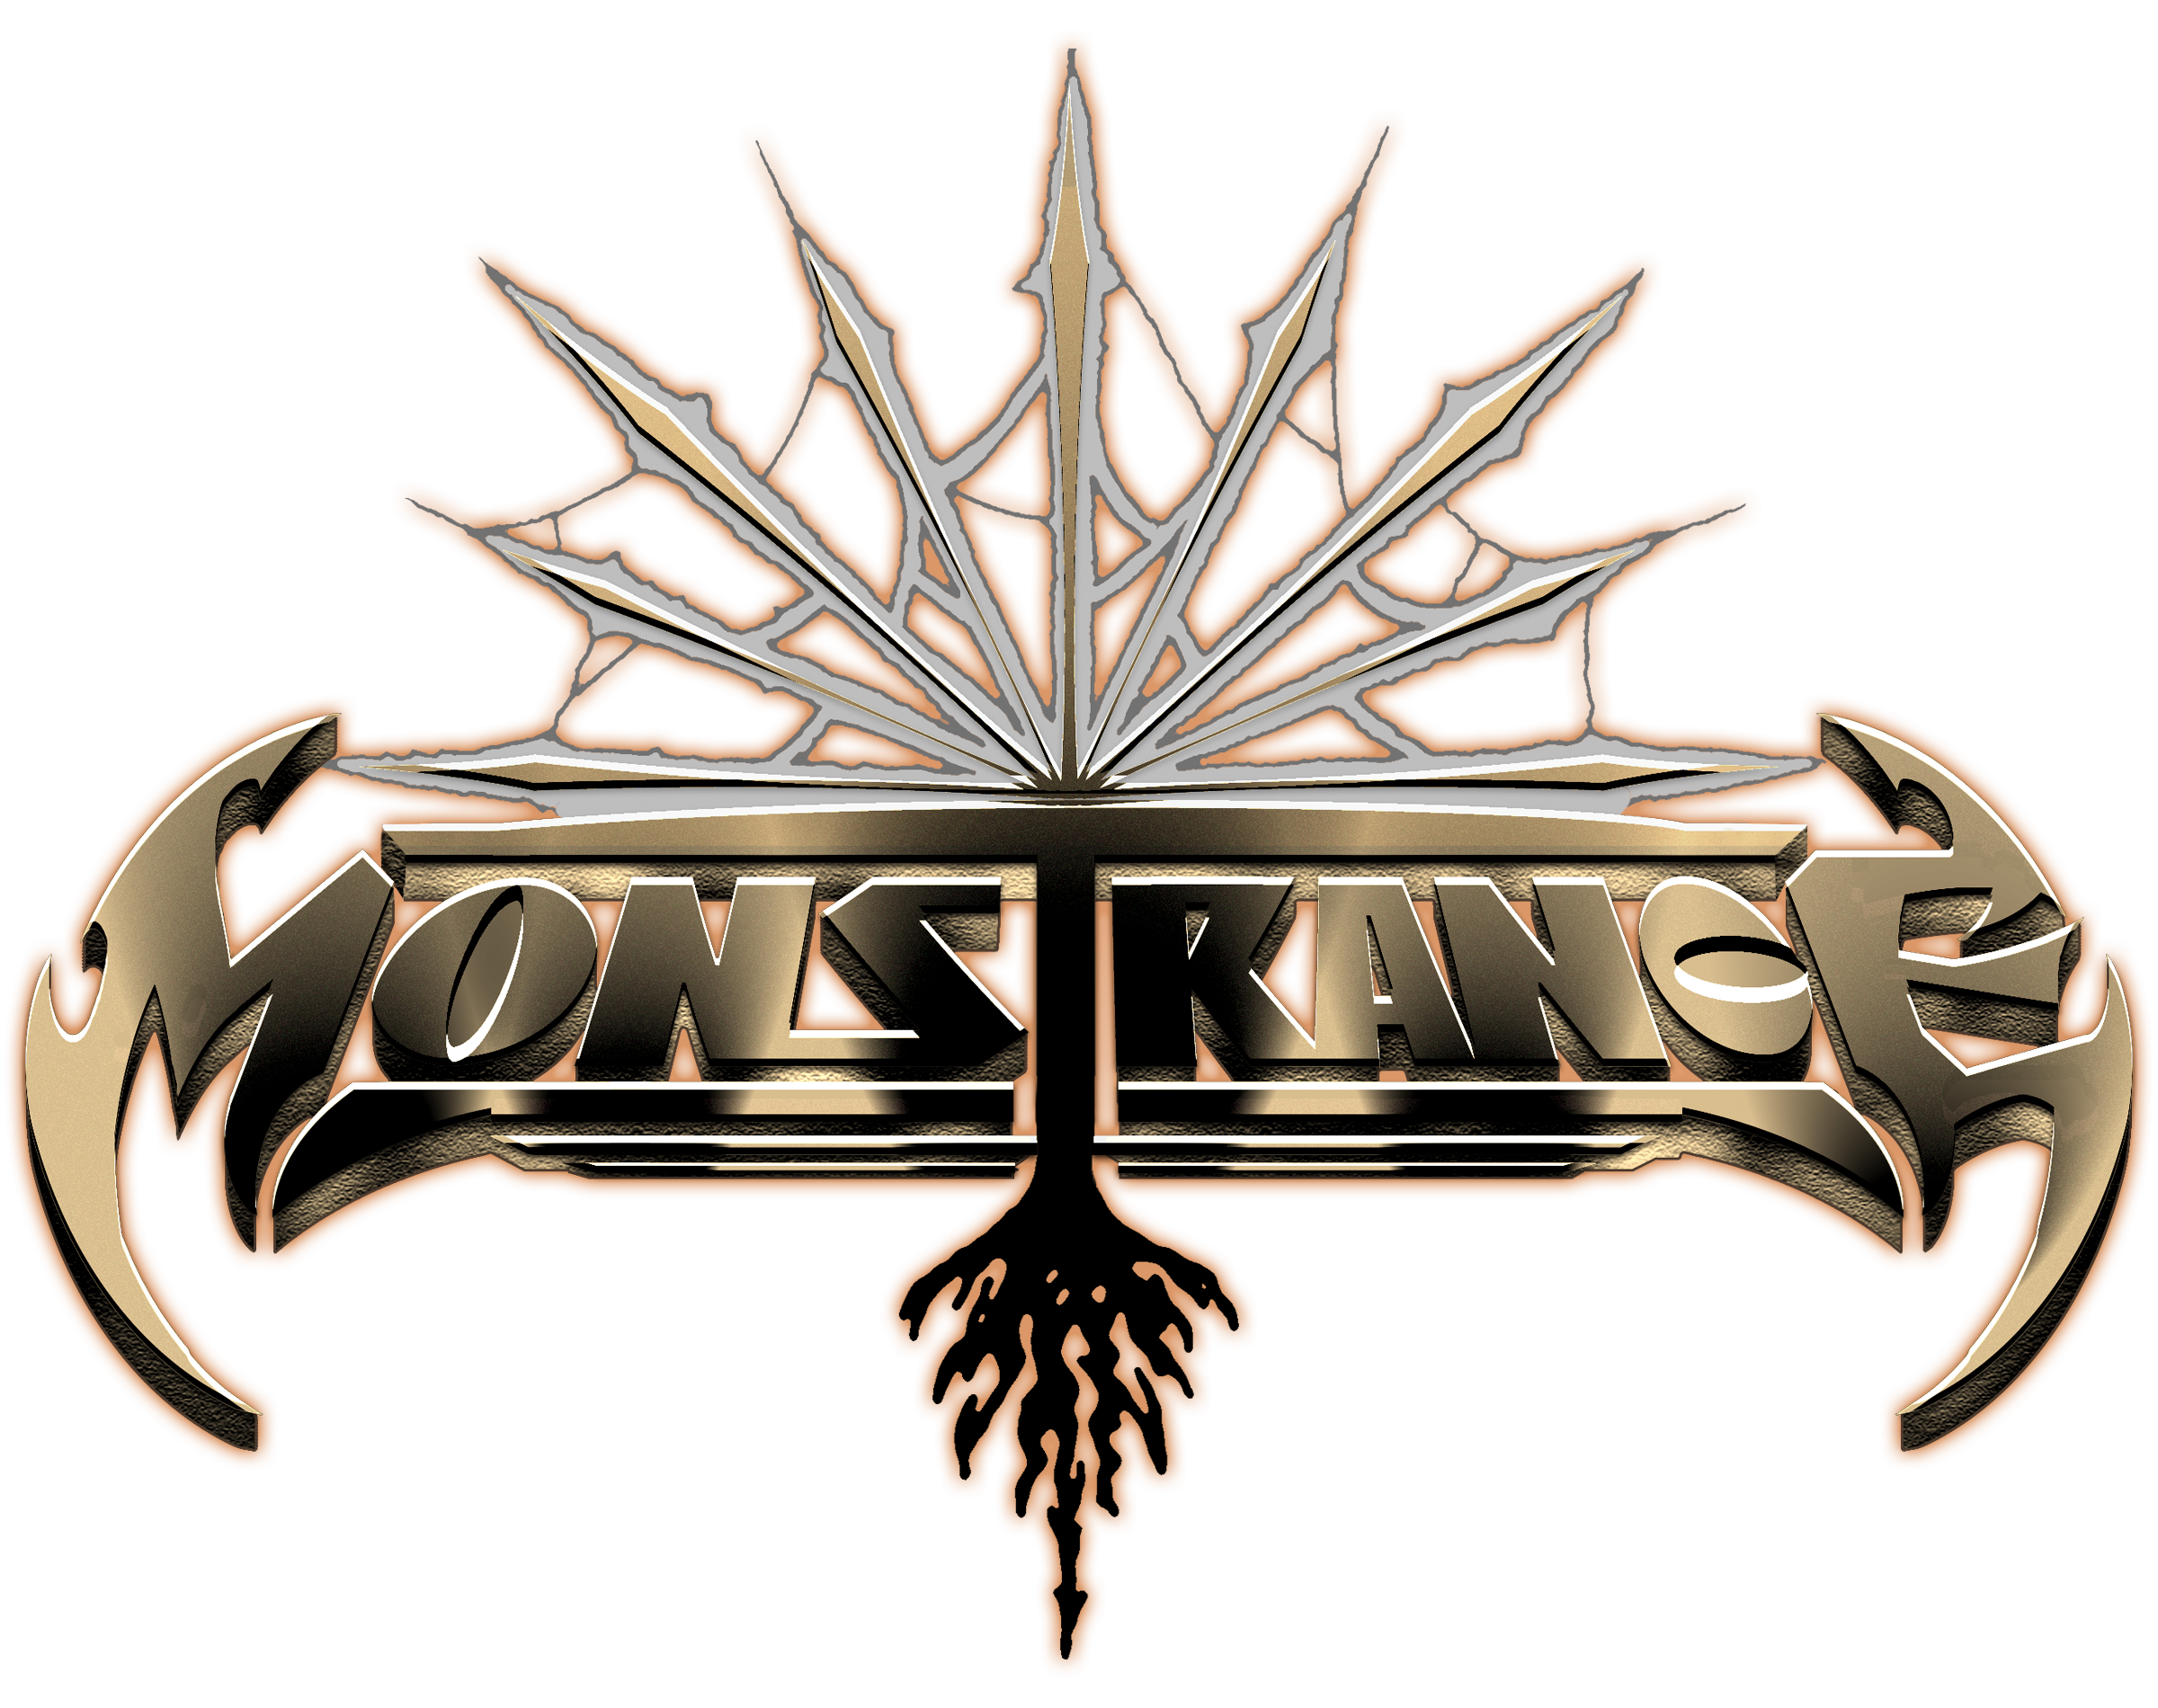 Carcass band logo png. Latest news about monstrance